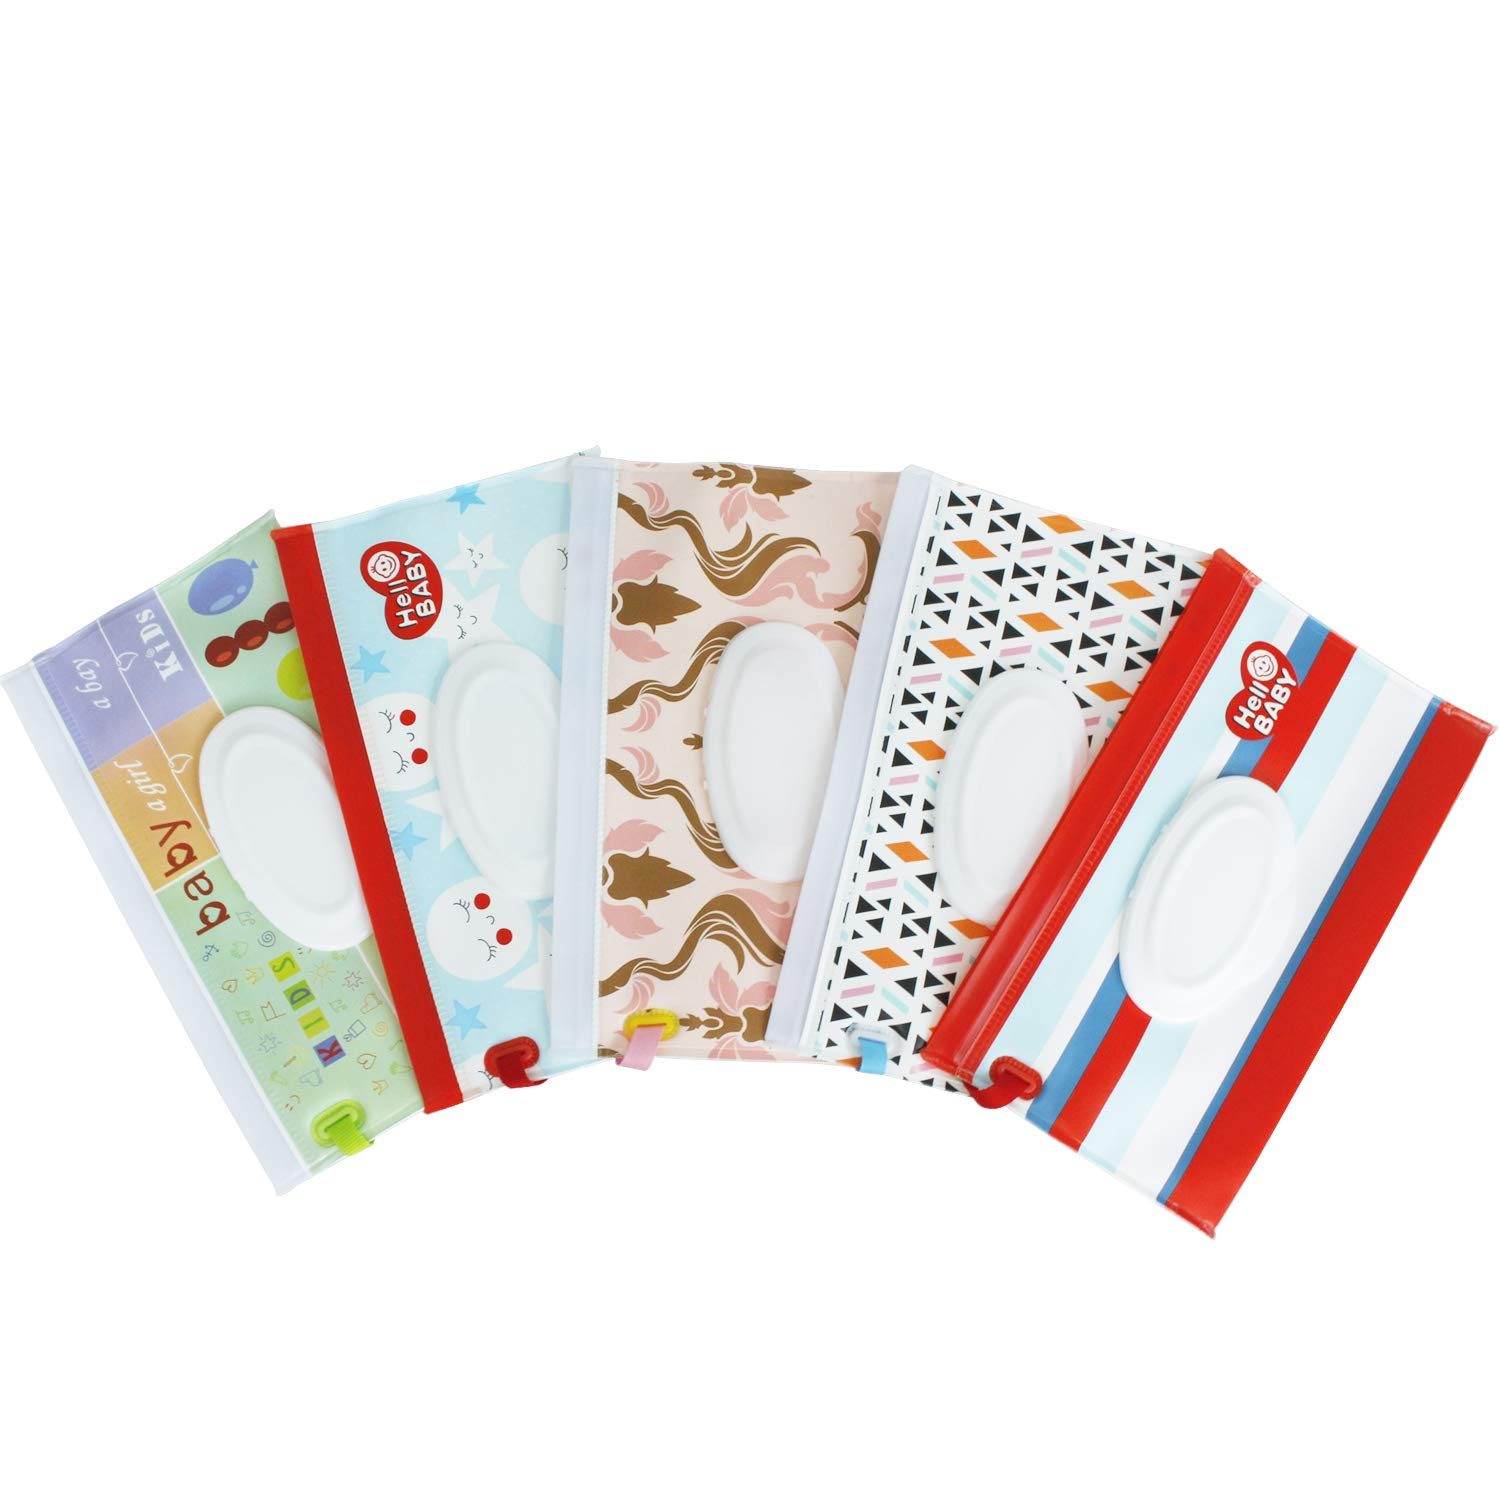 Reusable Wet Wipe Pouch [Set of 5] - Dispenser for Personal Wipes, Wet Wipe Portable Travel Cases MOLECOLE